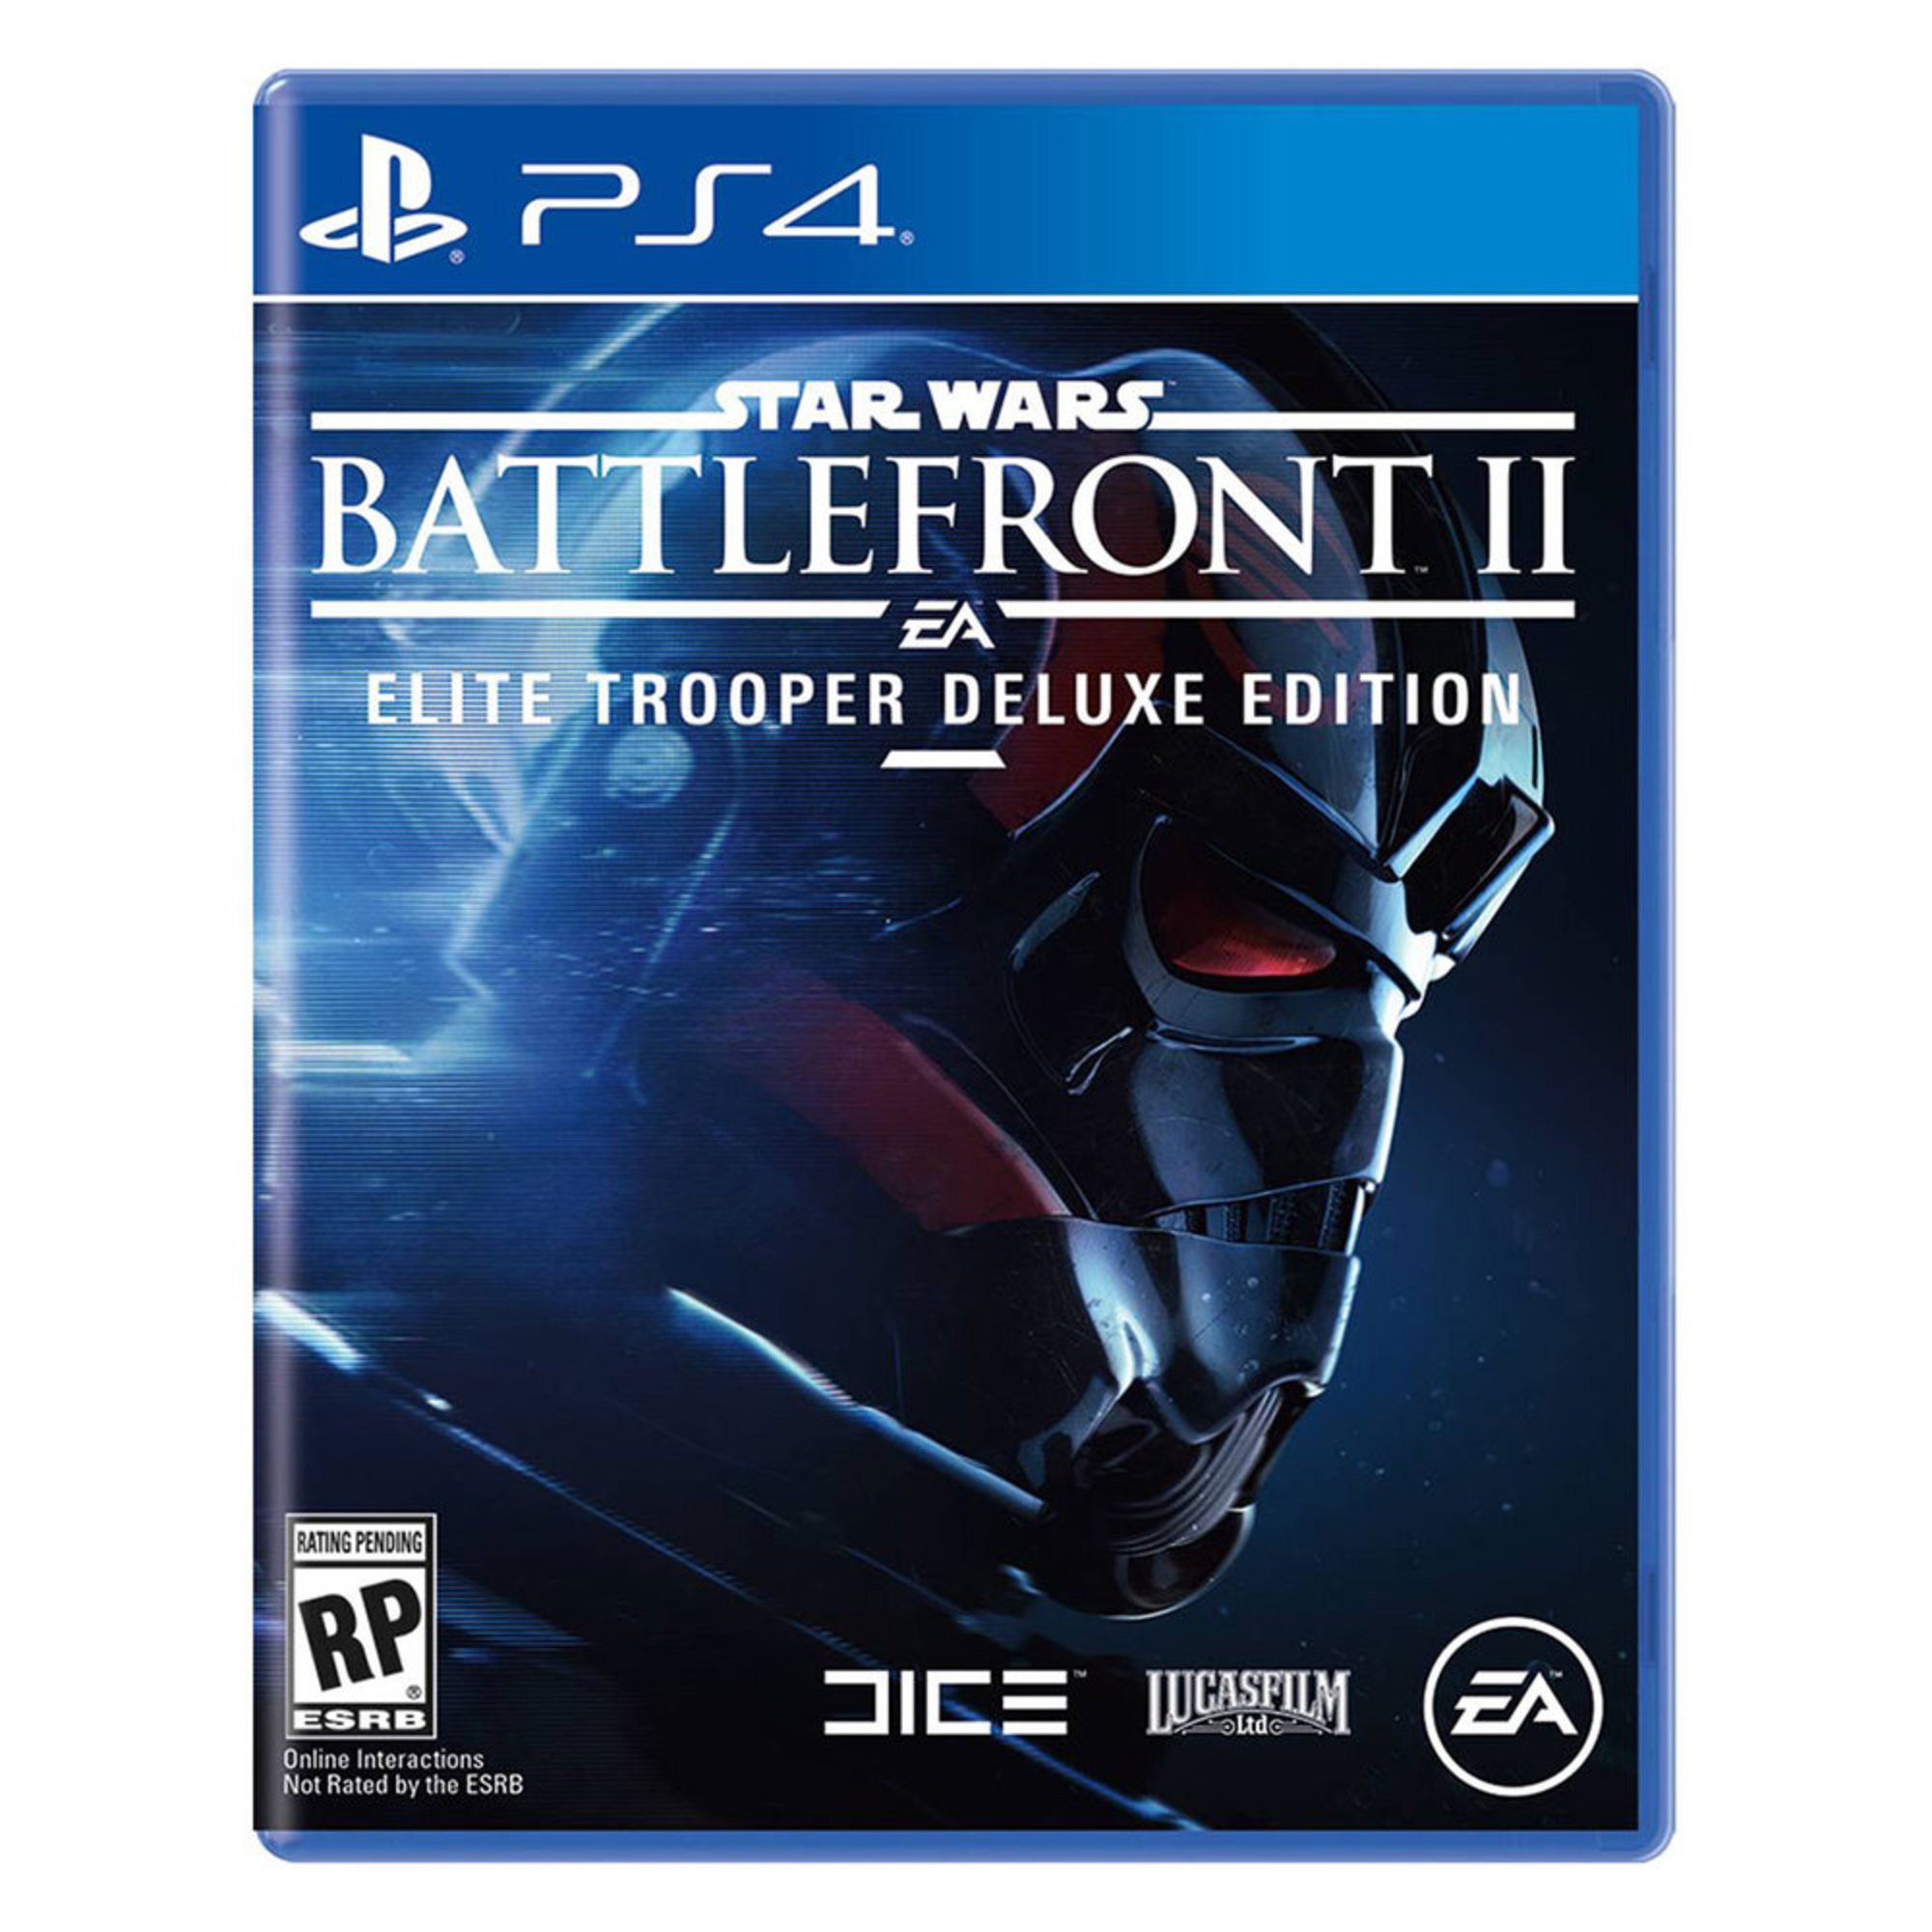 Ps De Star Wars Battlefront Ii Playstation Games Electronics - Free invoice software pc nike factory outlet store online